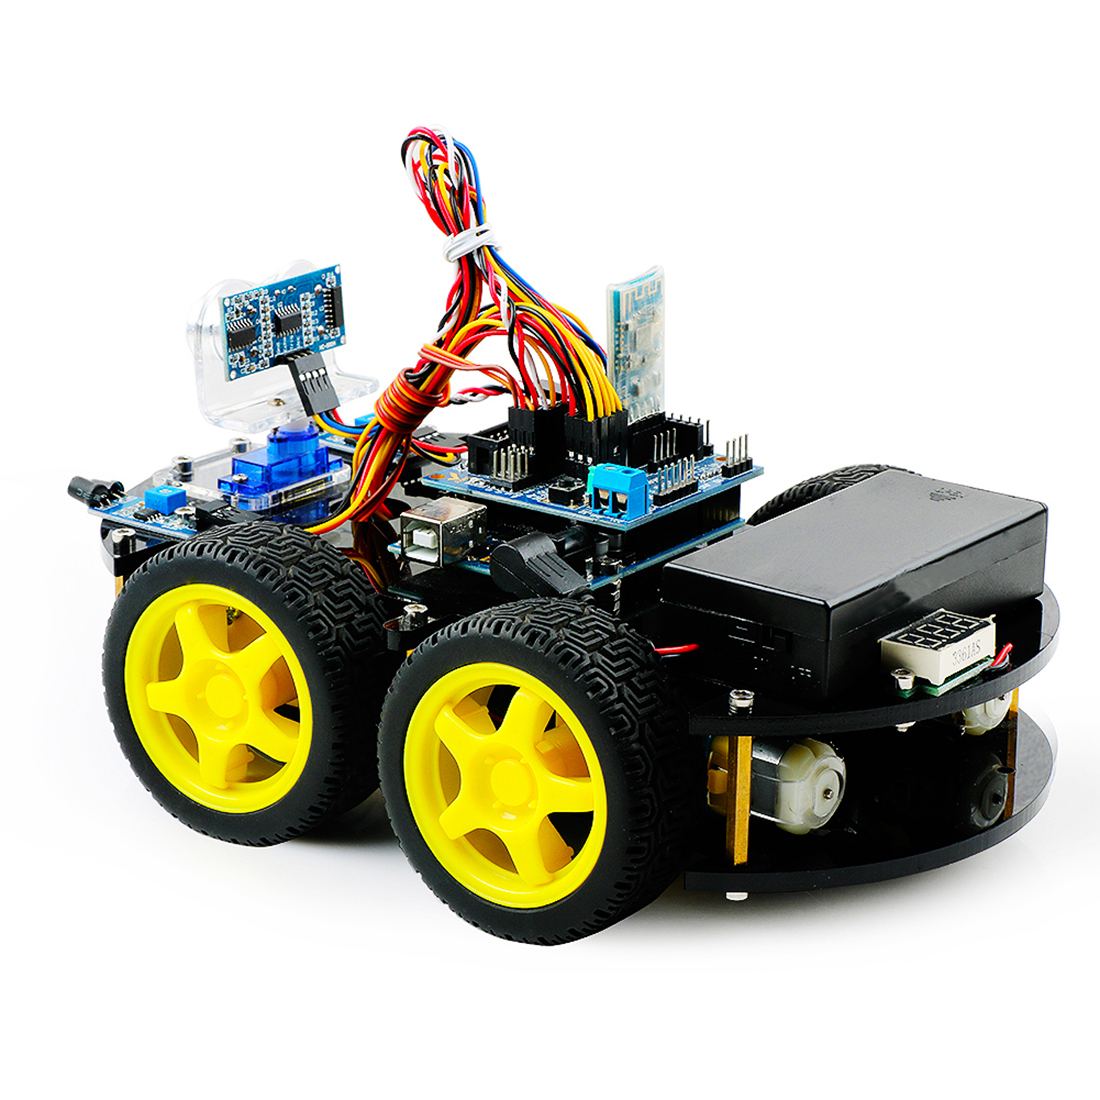 DIY Obstacle Avoidance Smart Programmable Robot Car Educational Learning Kit For Arduino UNO Children Kids Early Education Toys